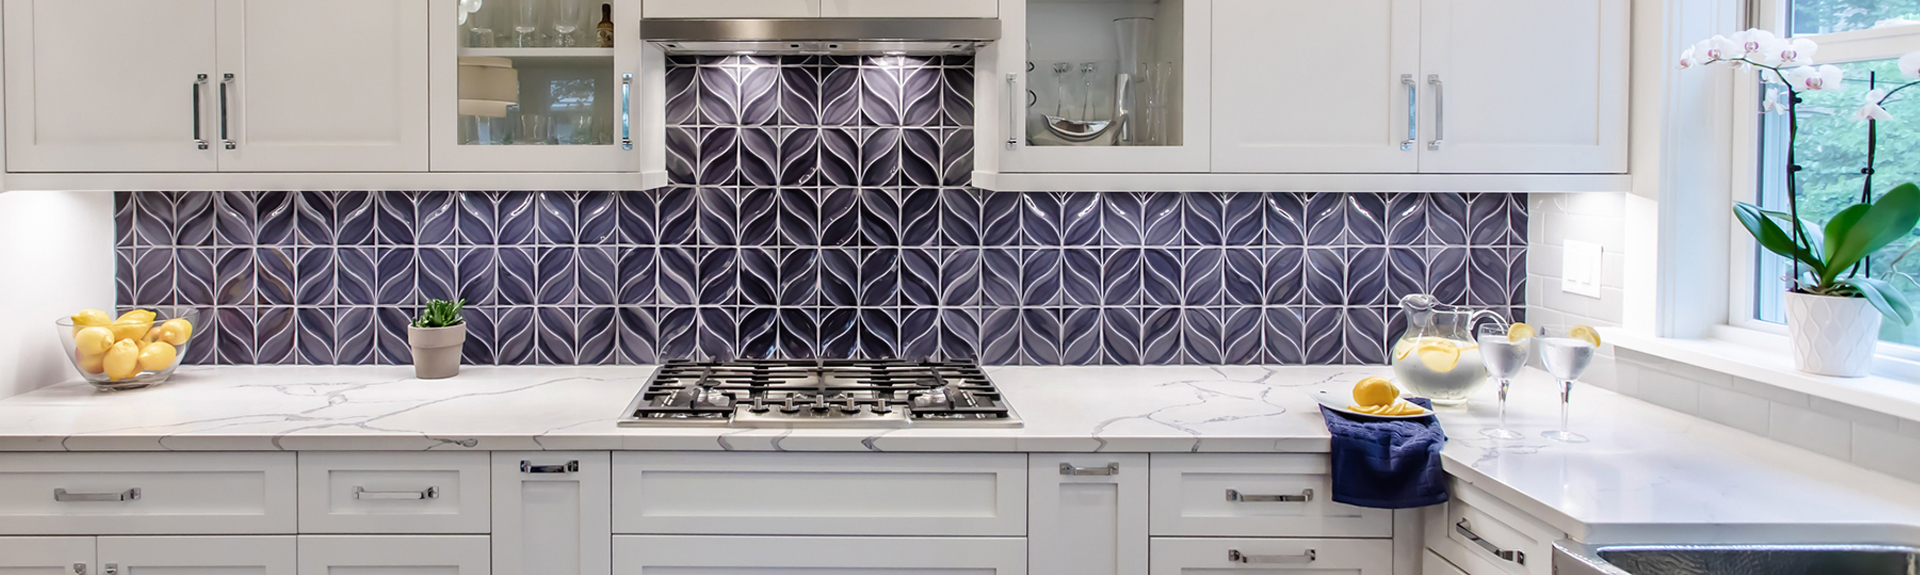 Stellar Dahlia Fontain Backsplash Kitchen with white cabinets